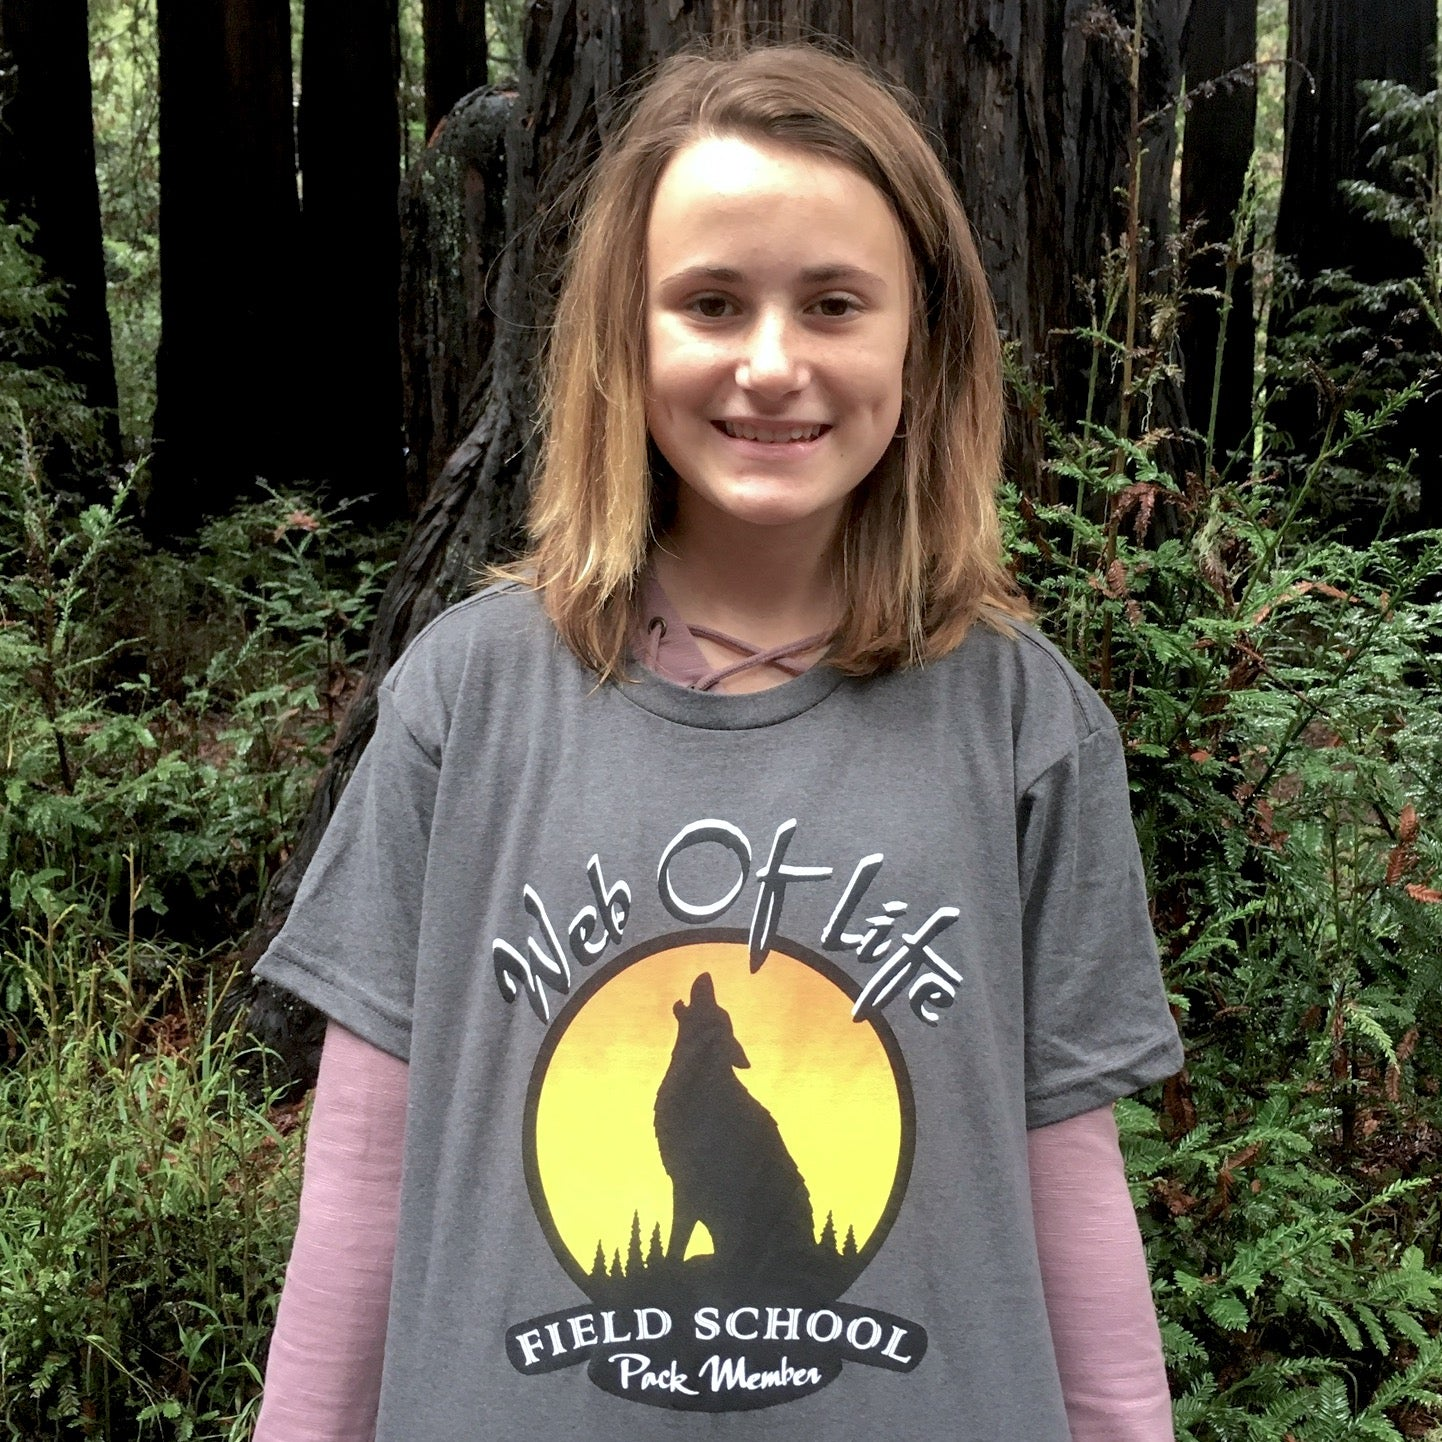 WOLF School introduces 100% Recycled Everywhere T-shirts to benefit Scholarship Fund